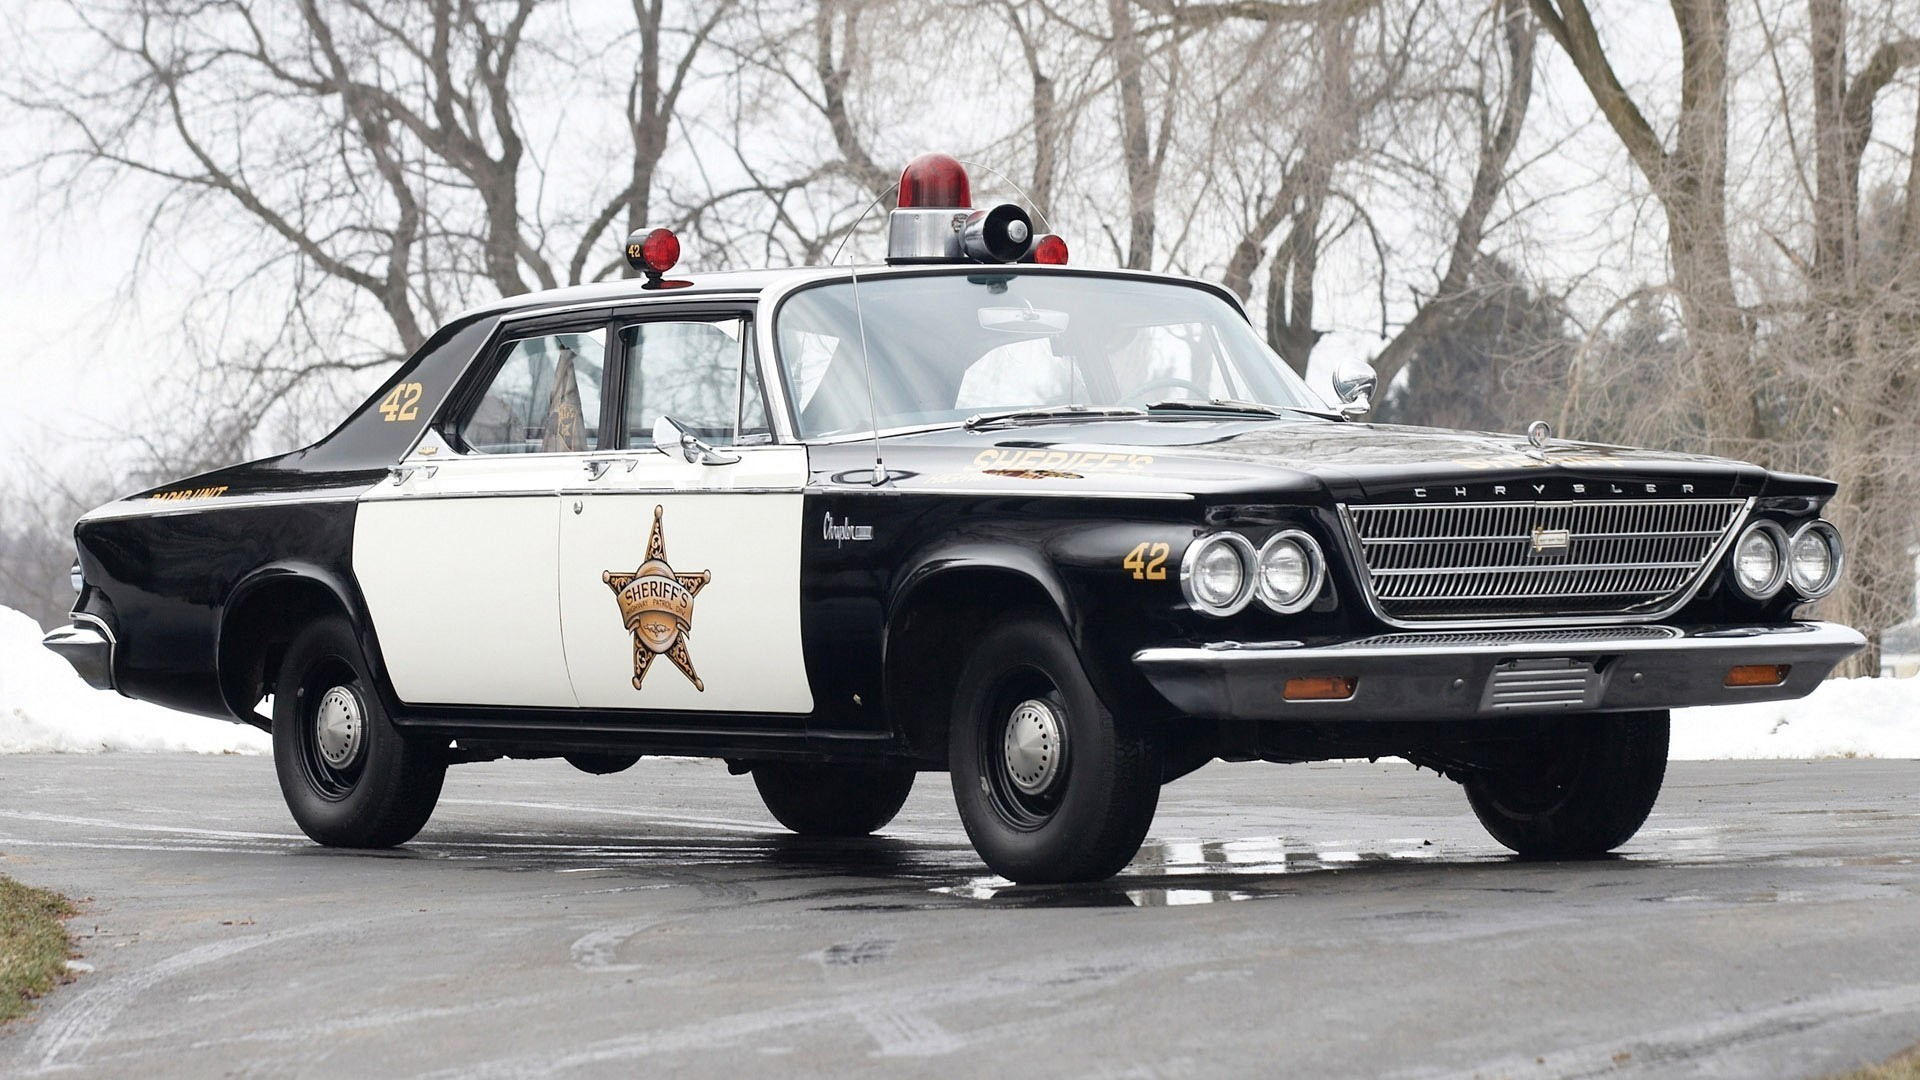 1920x1080 car, Police, Police Cars, Old Car, Chrysler, Sheriff, Road Wallpapers HD /  Desktop and Mobile Backgrounds